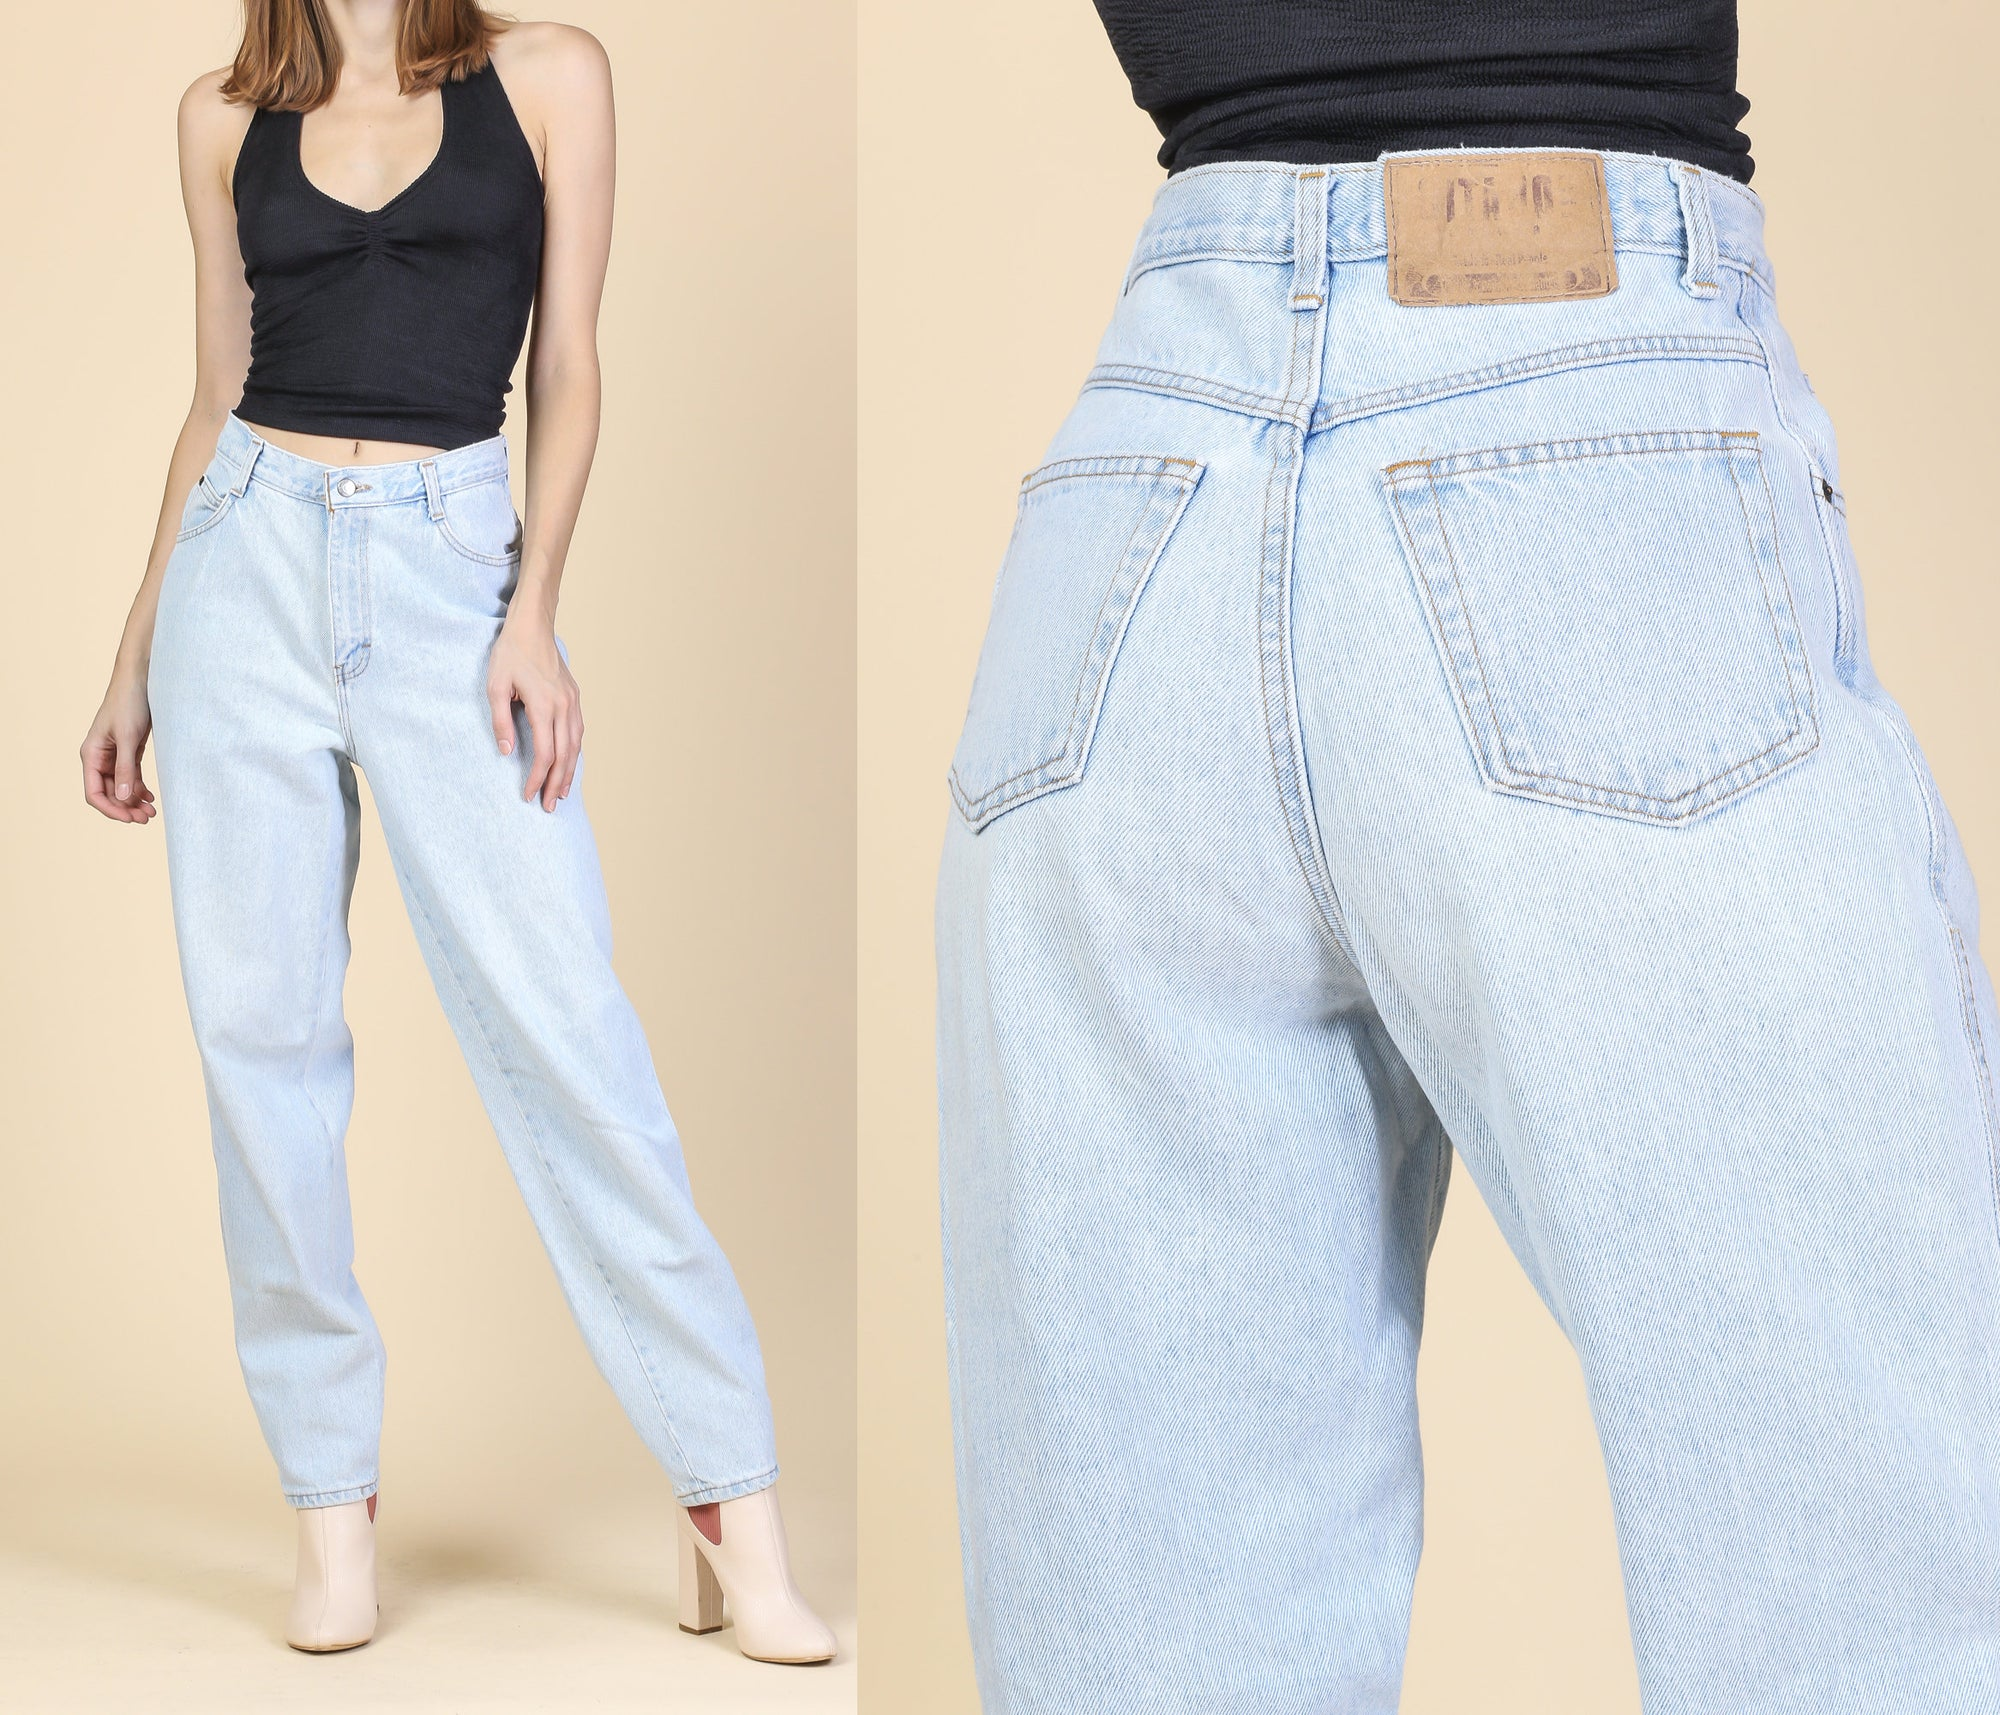 Vintage Gitano High Waist Mom Jeans - Medium, 28